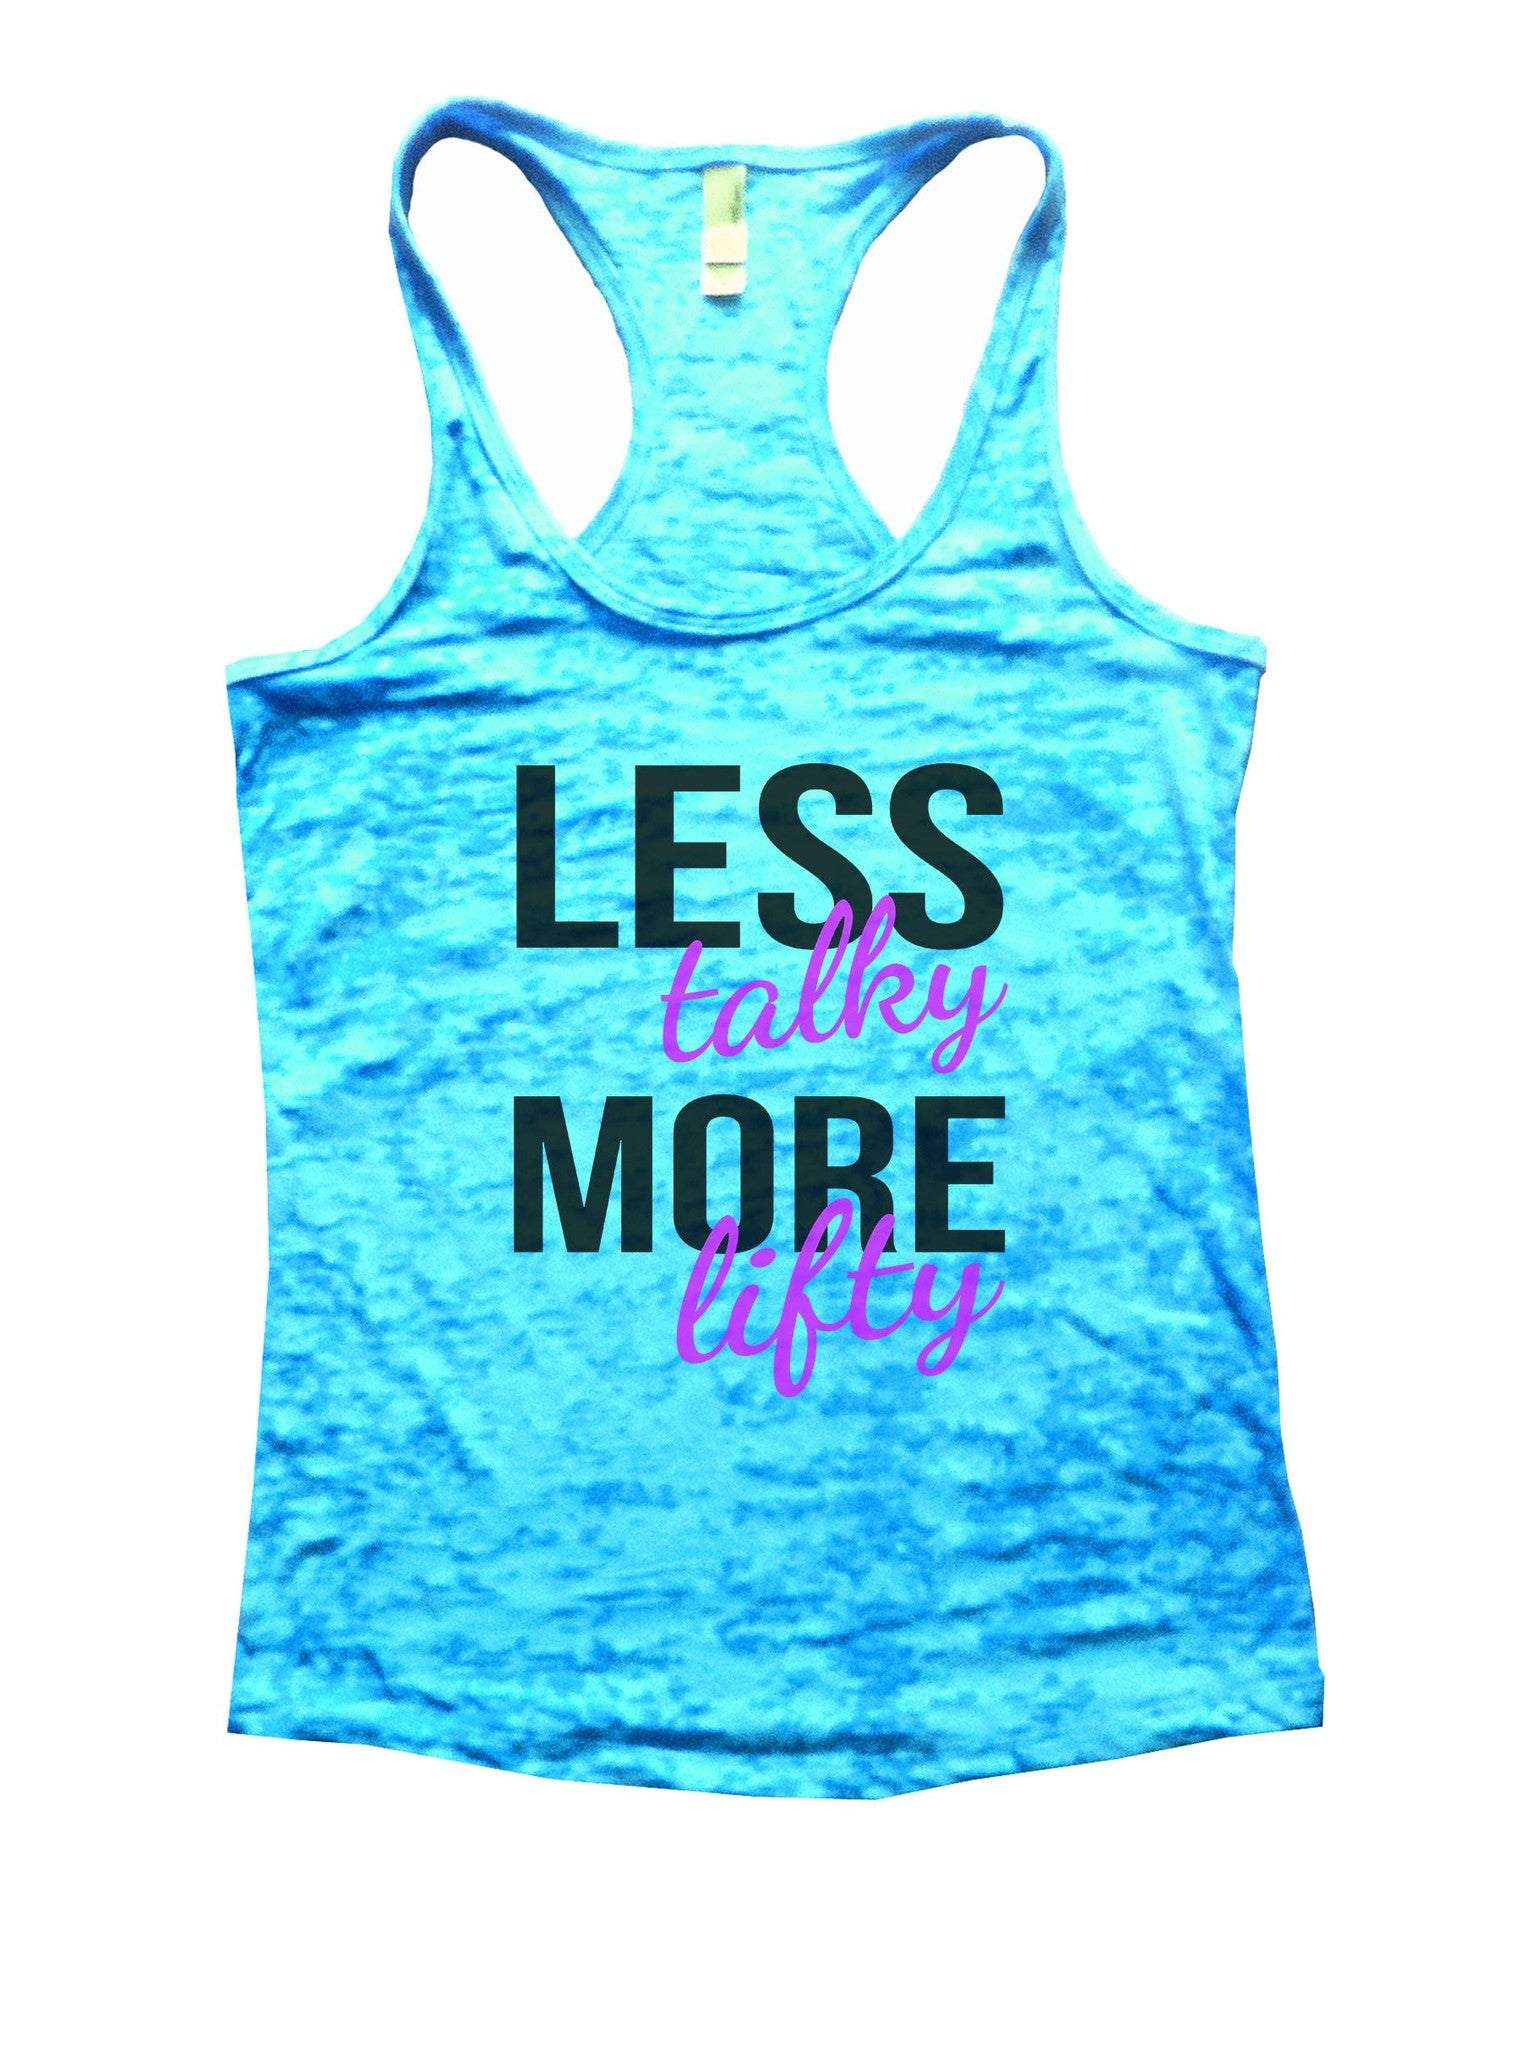 Less Talky More Lifty Burnout Tank Top By BurnoutTankTops.com - 874 - Funny Shirts Tank Tops Burnouts and Triblends  - 4